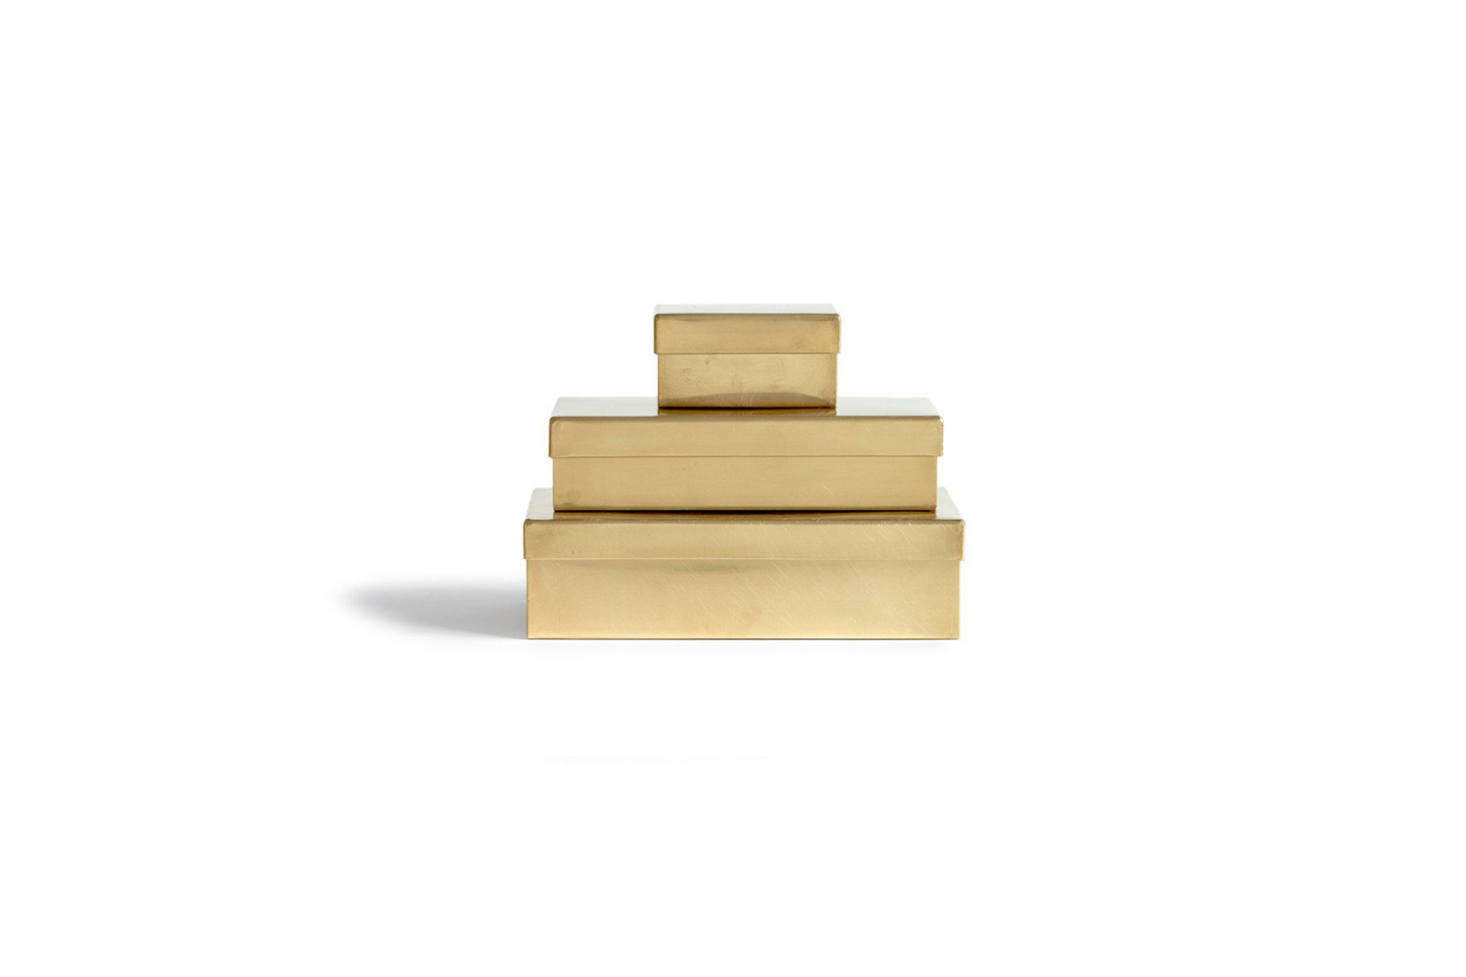 Celia often travels to Japan for work and collects objects while there, such as the SyuRo Japanese Metal Boxes in brass; $45 to $src=